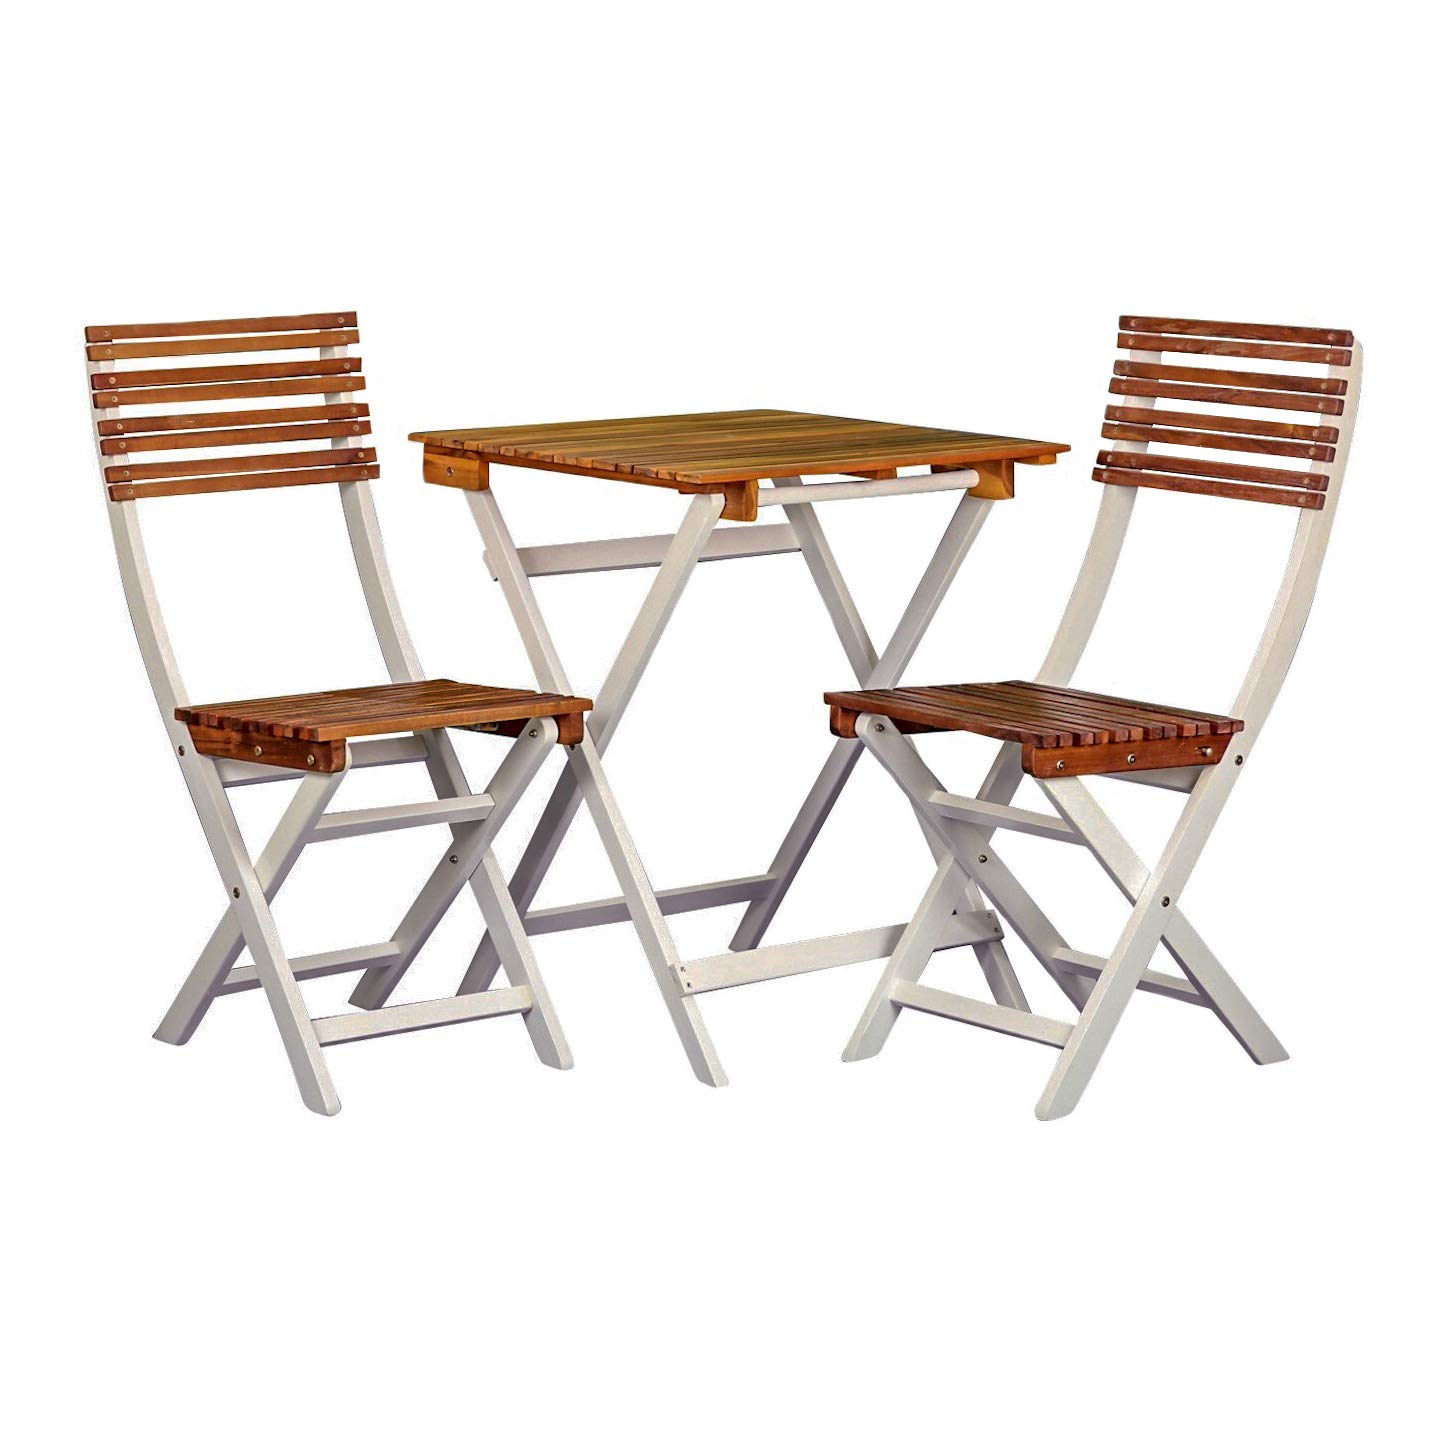 DTY Outdoor Living South Park 3-Piece Acacia Outdoor Patio Cafe Bistro Set with Square Folding Table and 2 Chairs, Natural Oil and White Finish